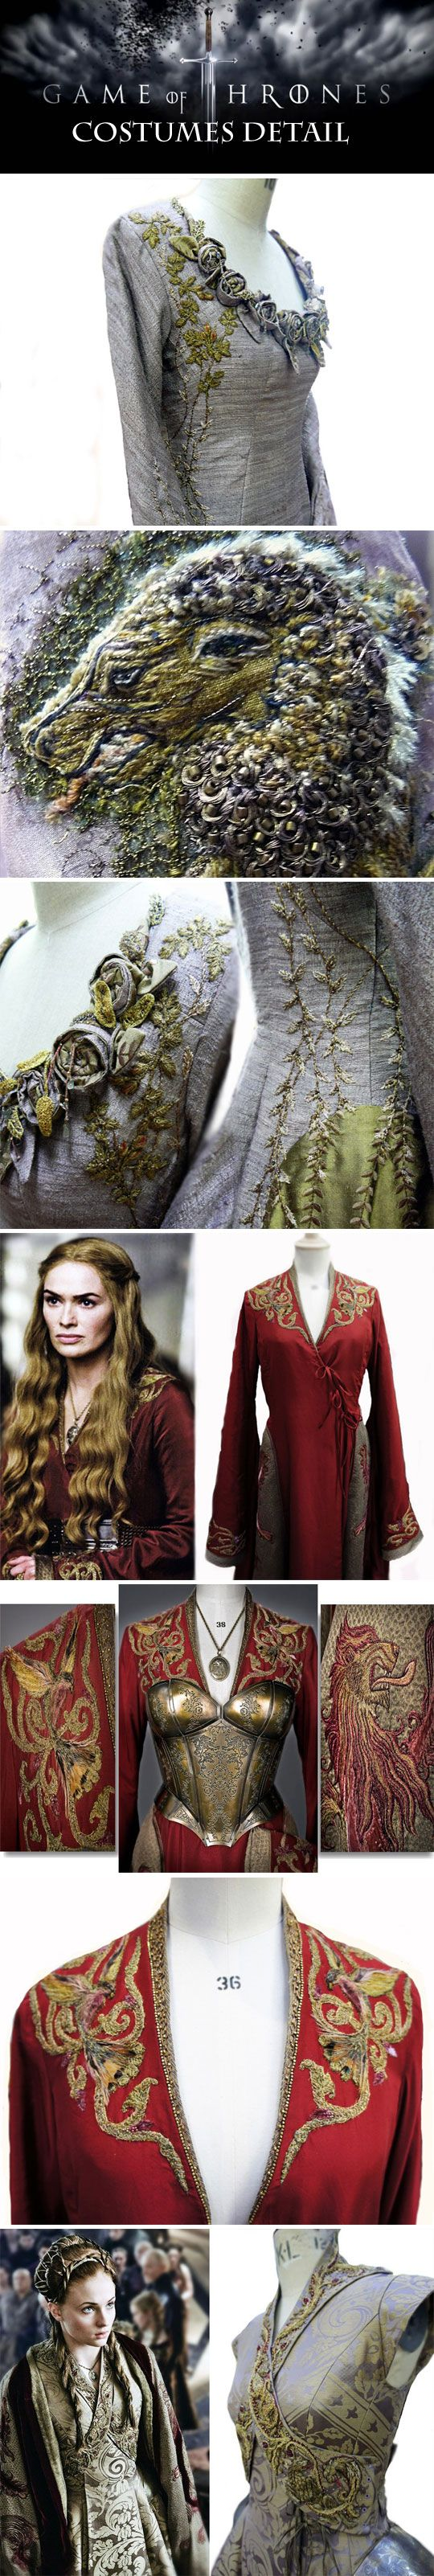 Game of Thrones costumes detail…i don't watch this show, but this was too cool not to pin!